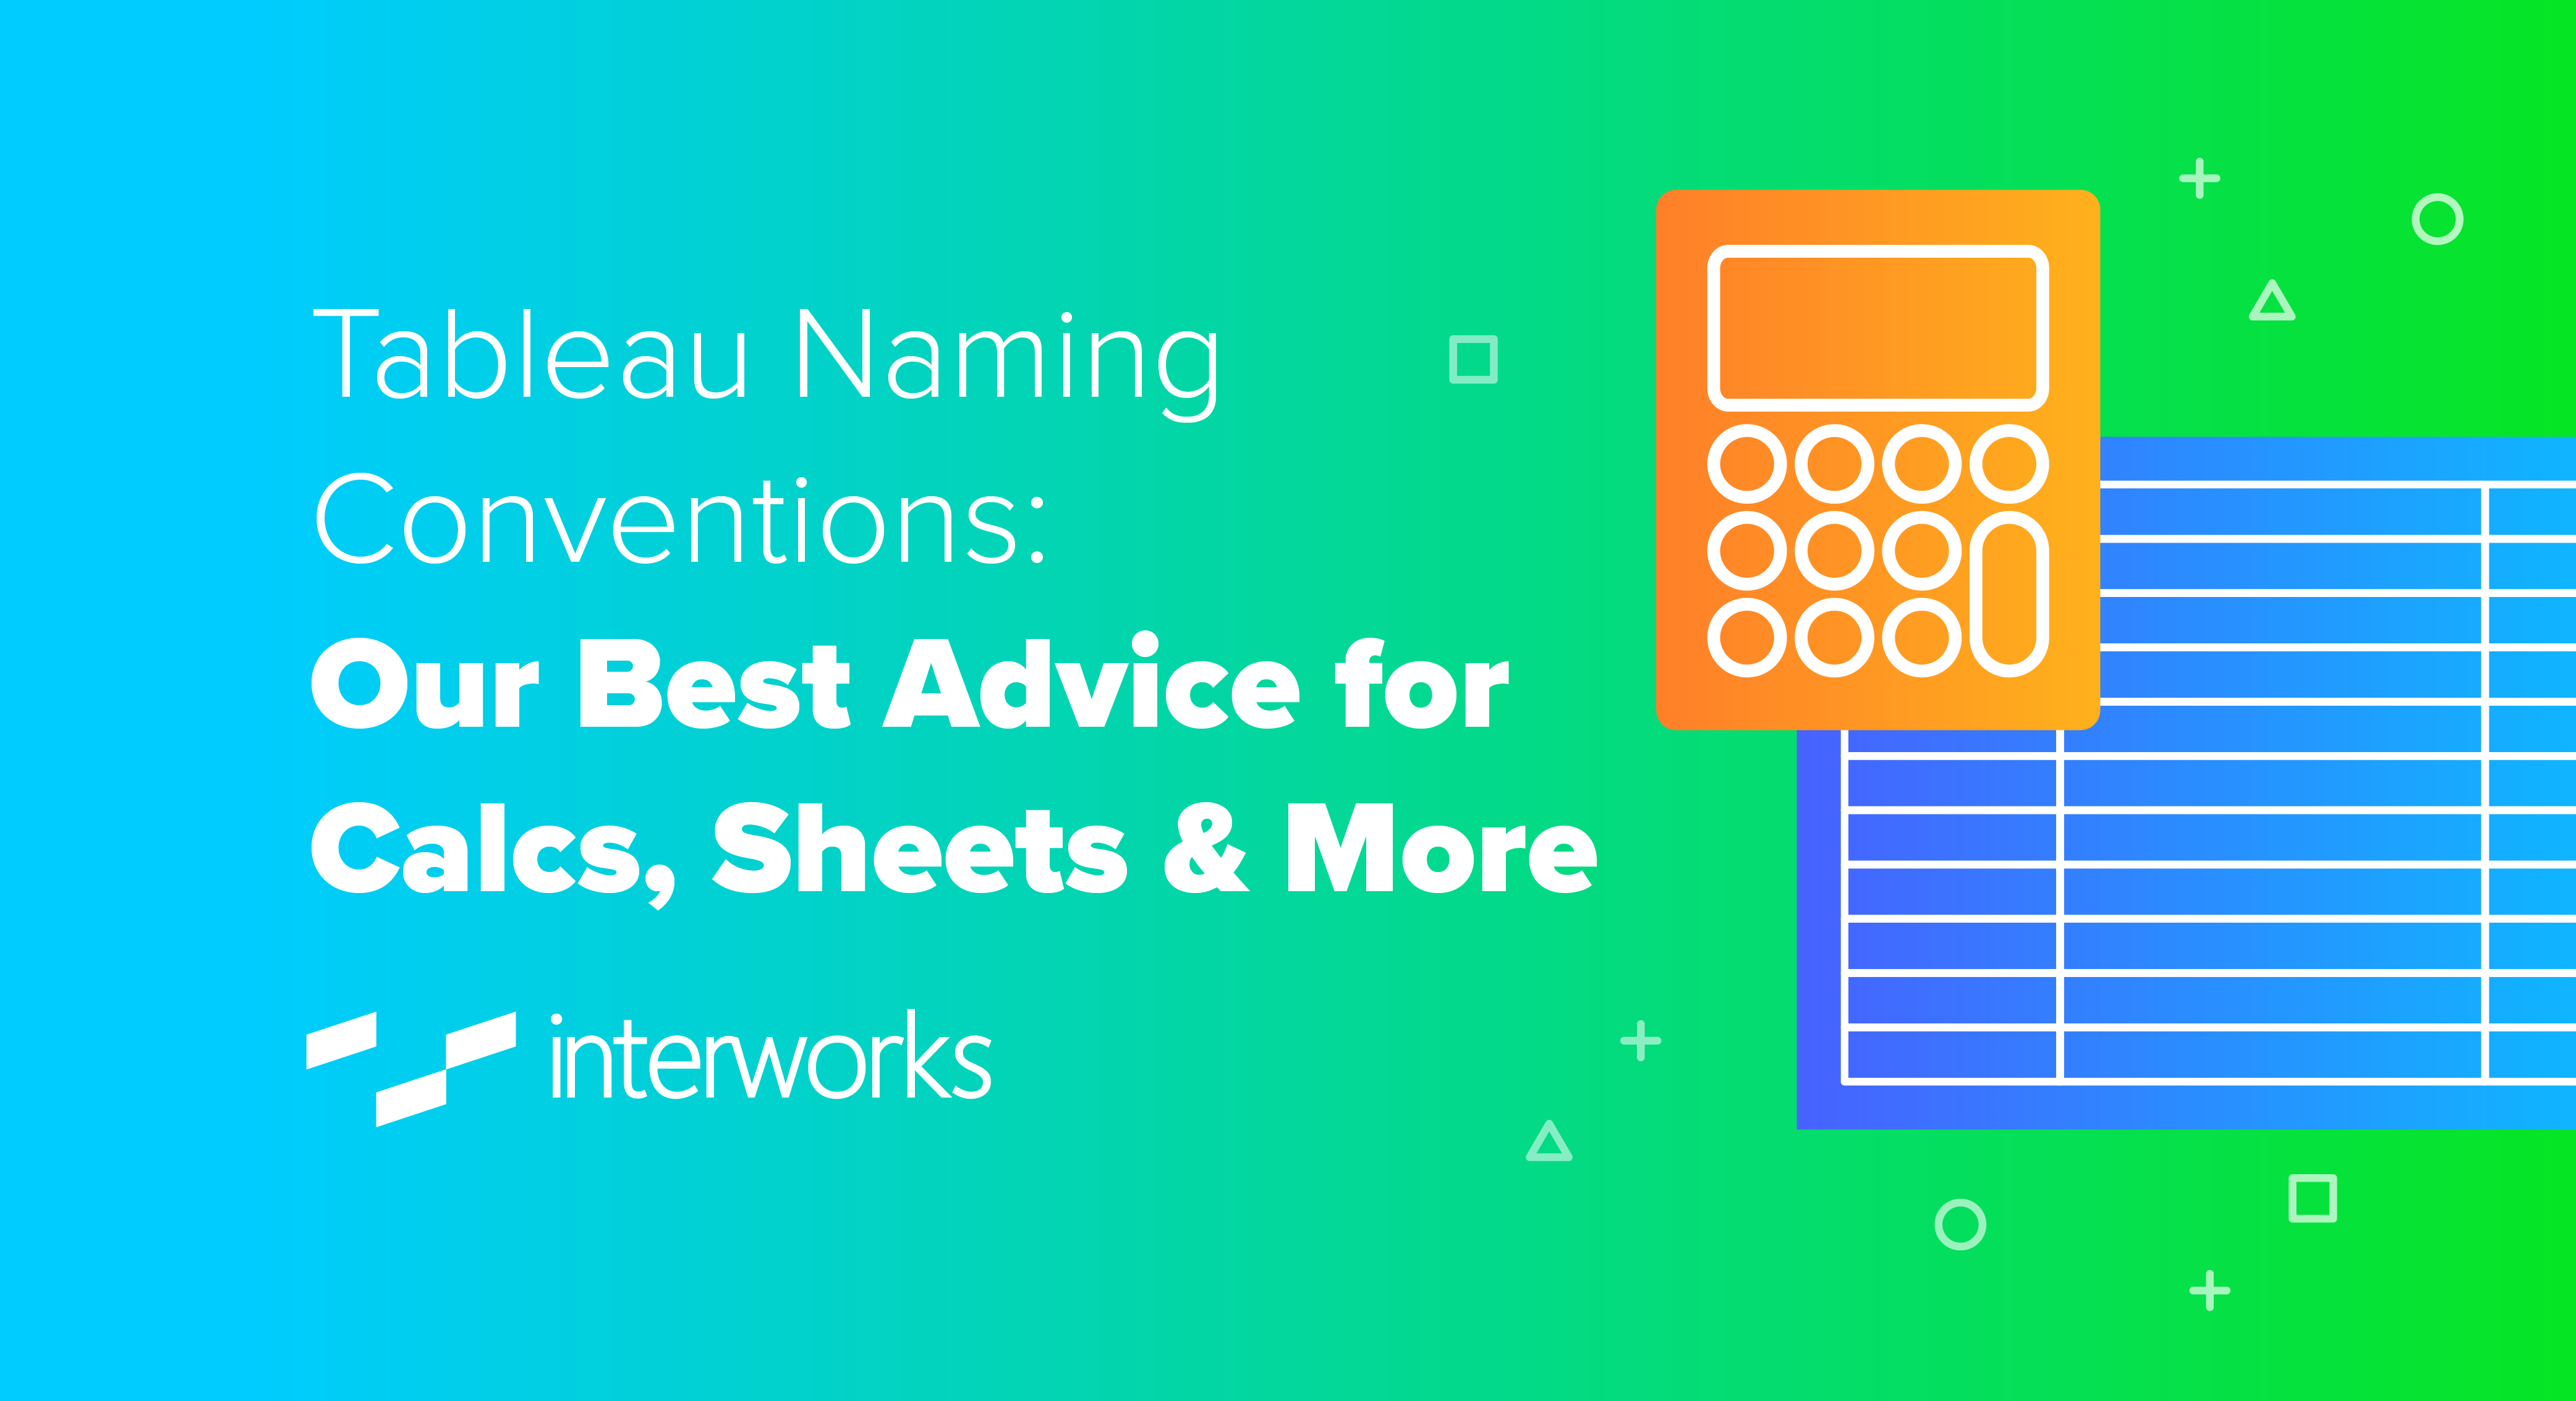 Tableau Naming Conventions: Our Best Advice for Calcs, Sheets & More